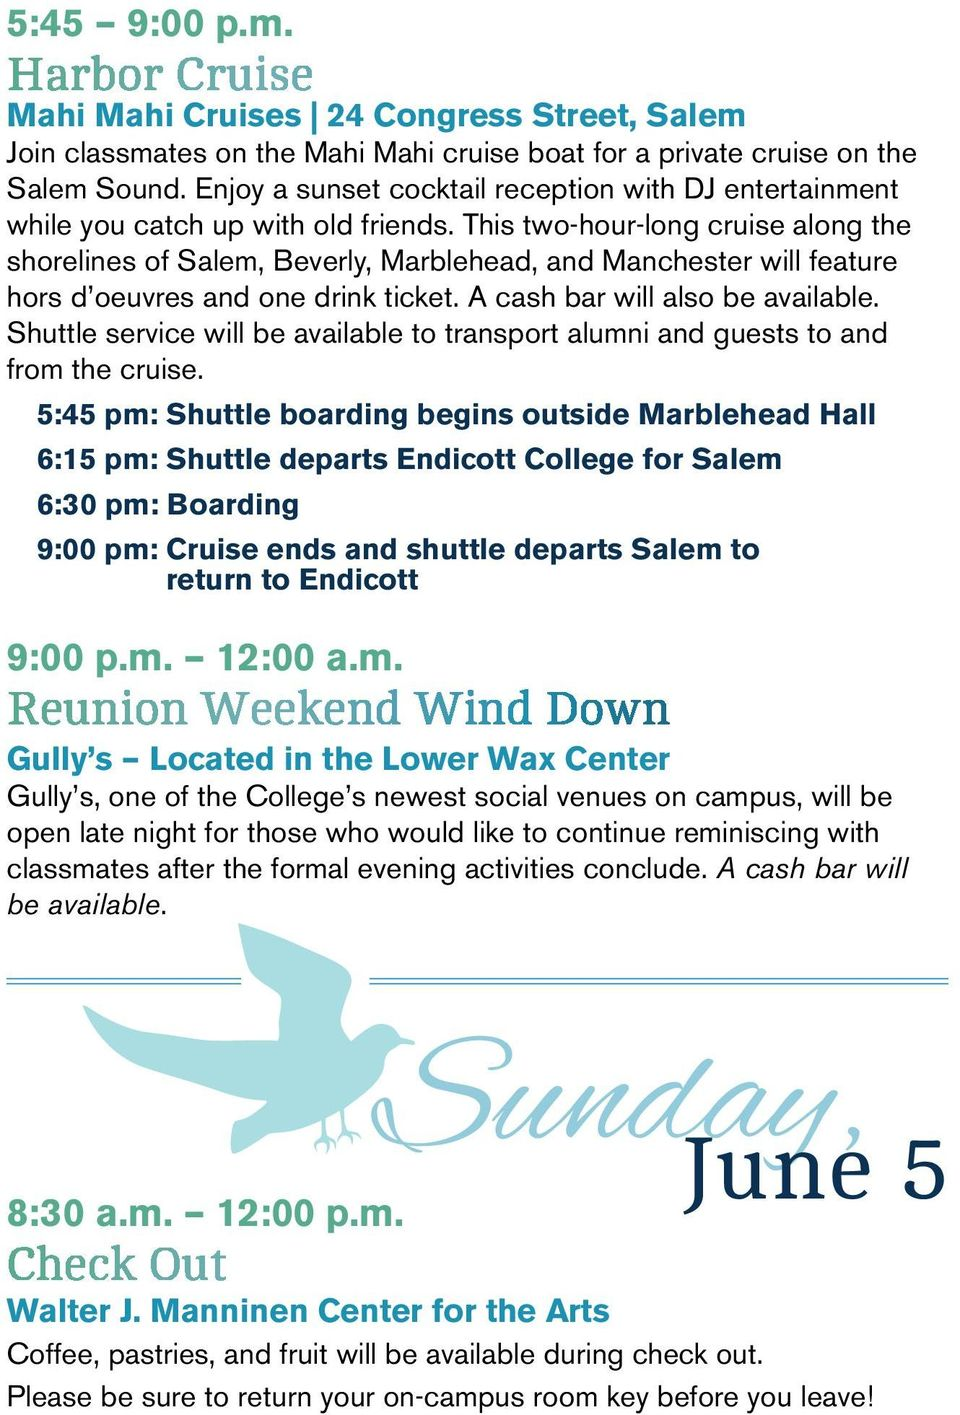 This two-hour-long cruise along the shorelines of Salem, Beverly, Marblehead, and Manchester will feature hors d oeuvres and one drink ticket. A cash bar will also be available.